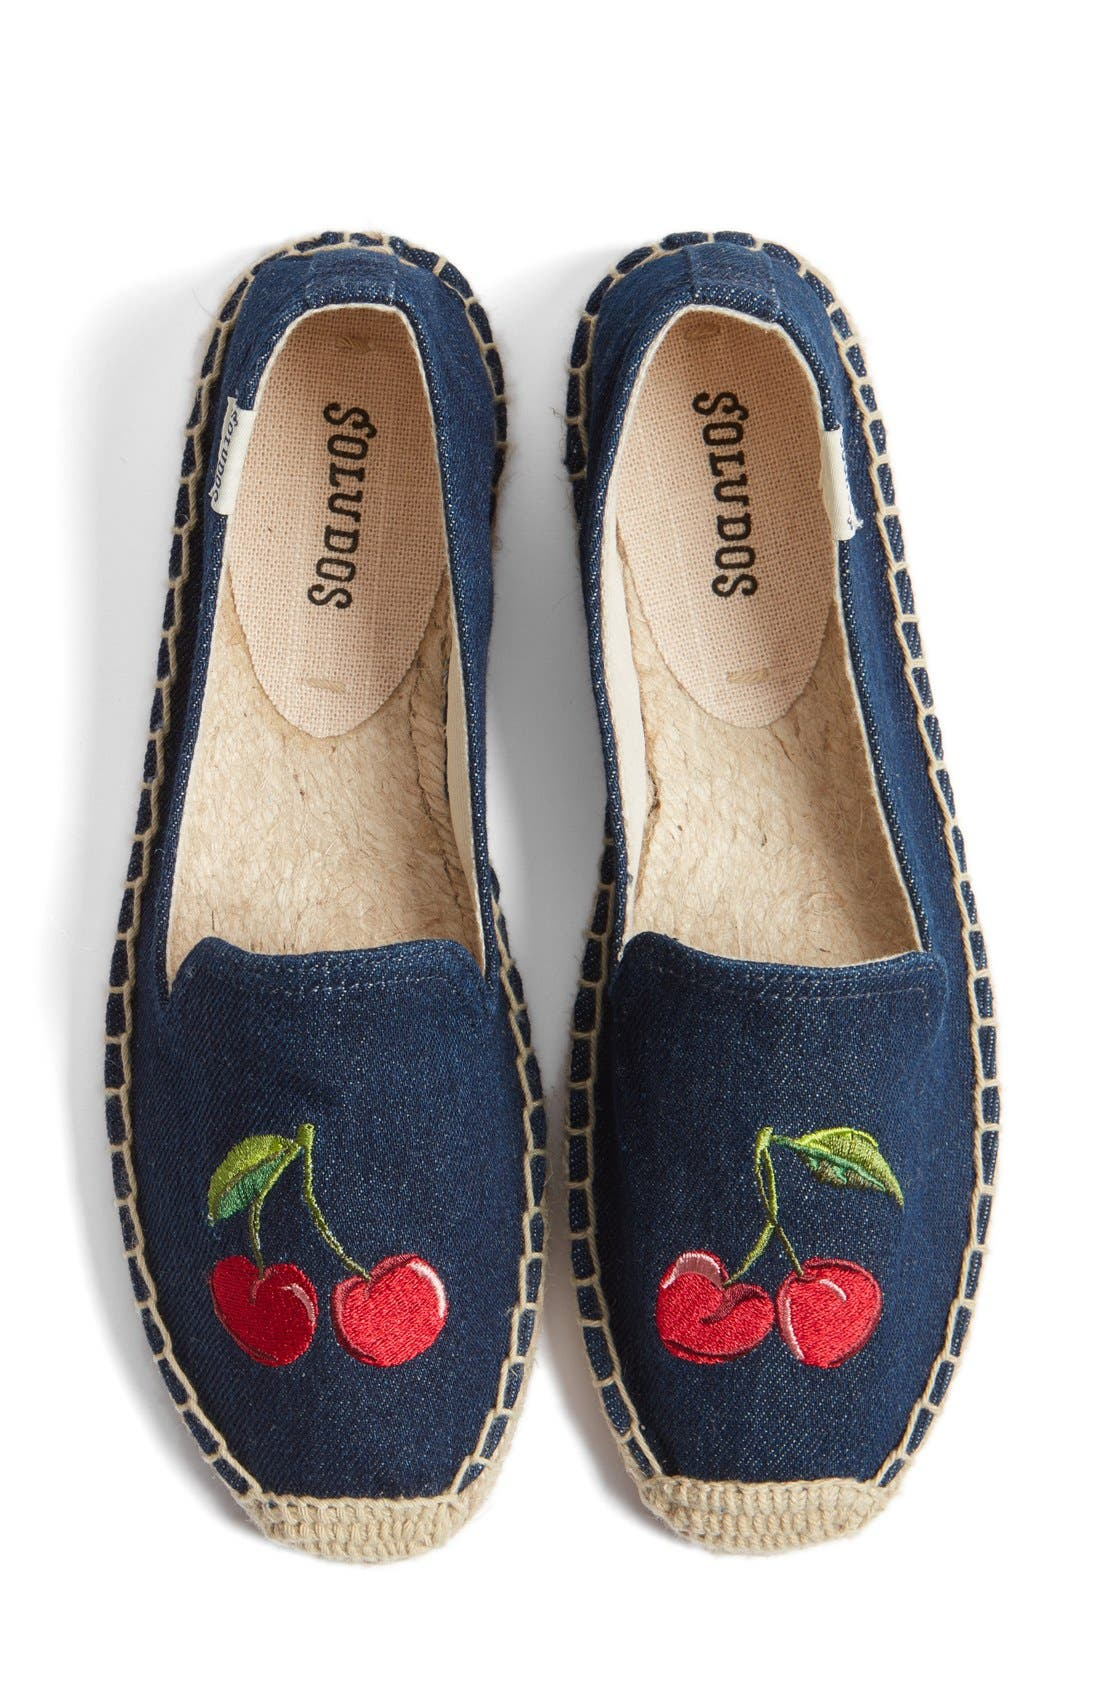 Alternate Image 1 Selected - Soludos 'Cherries' Embroidered Espadrille Slip-On (Women)